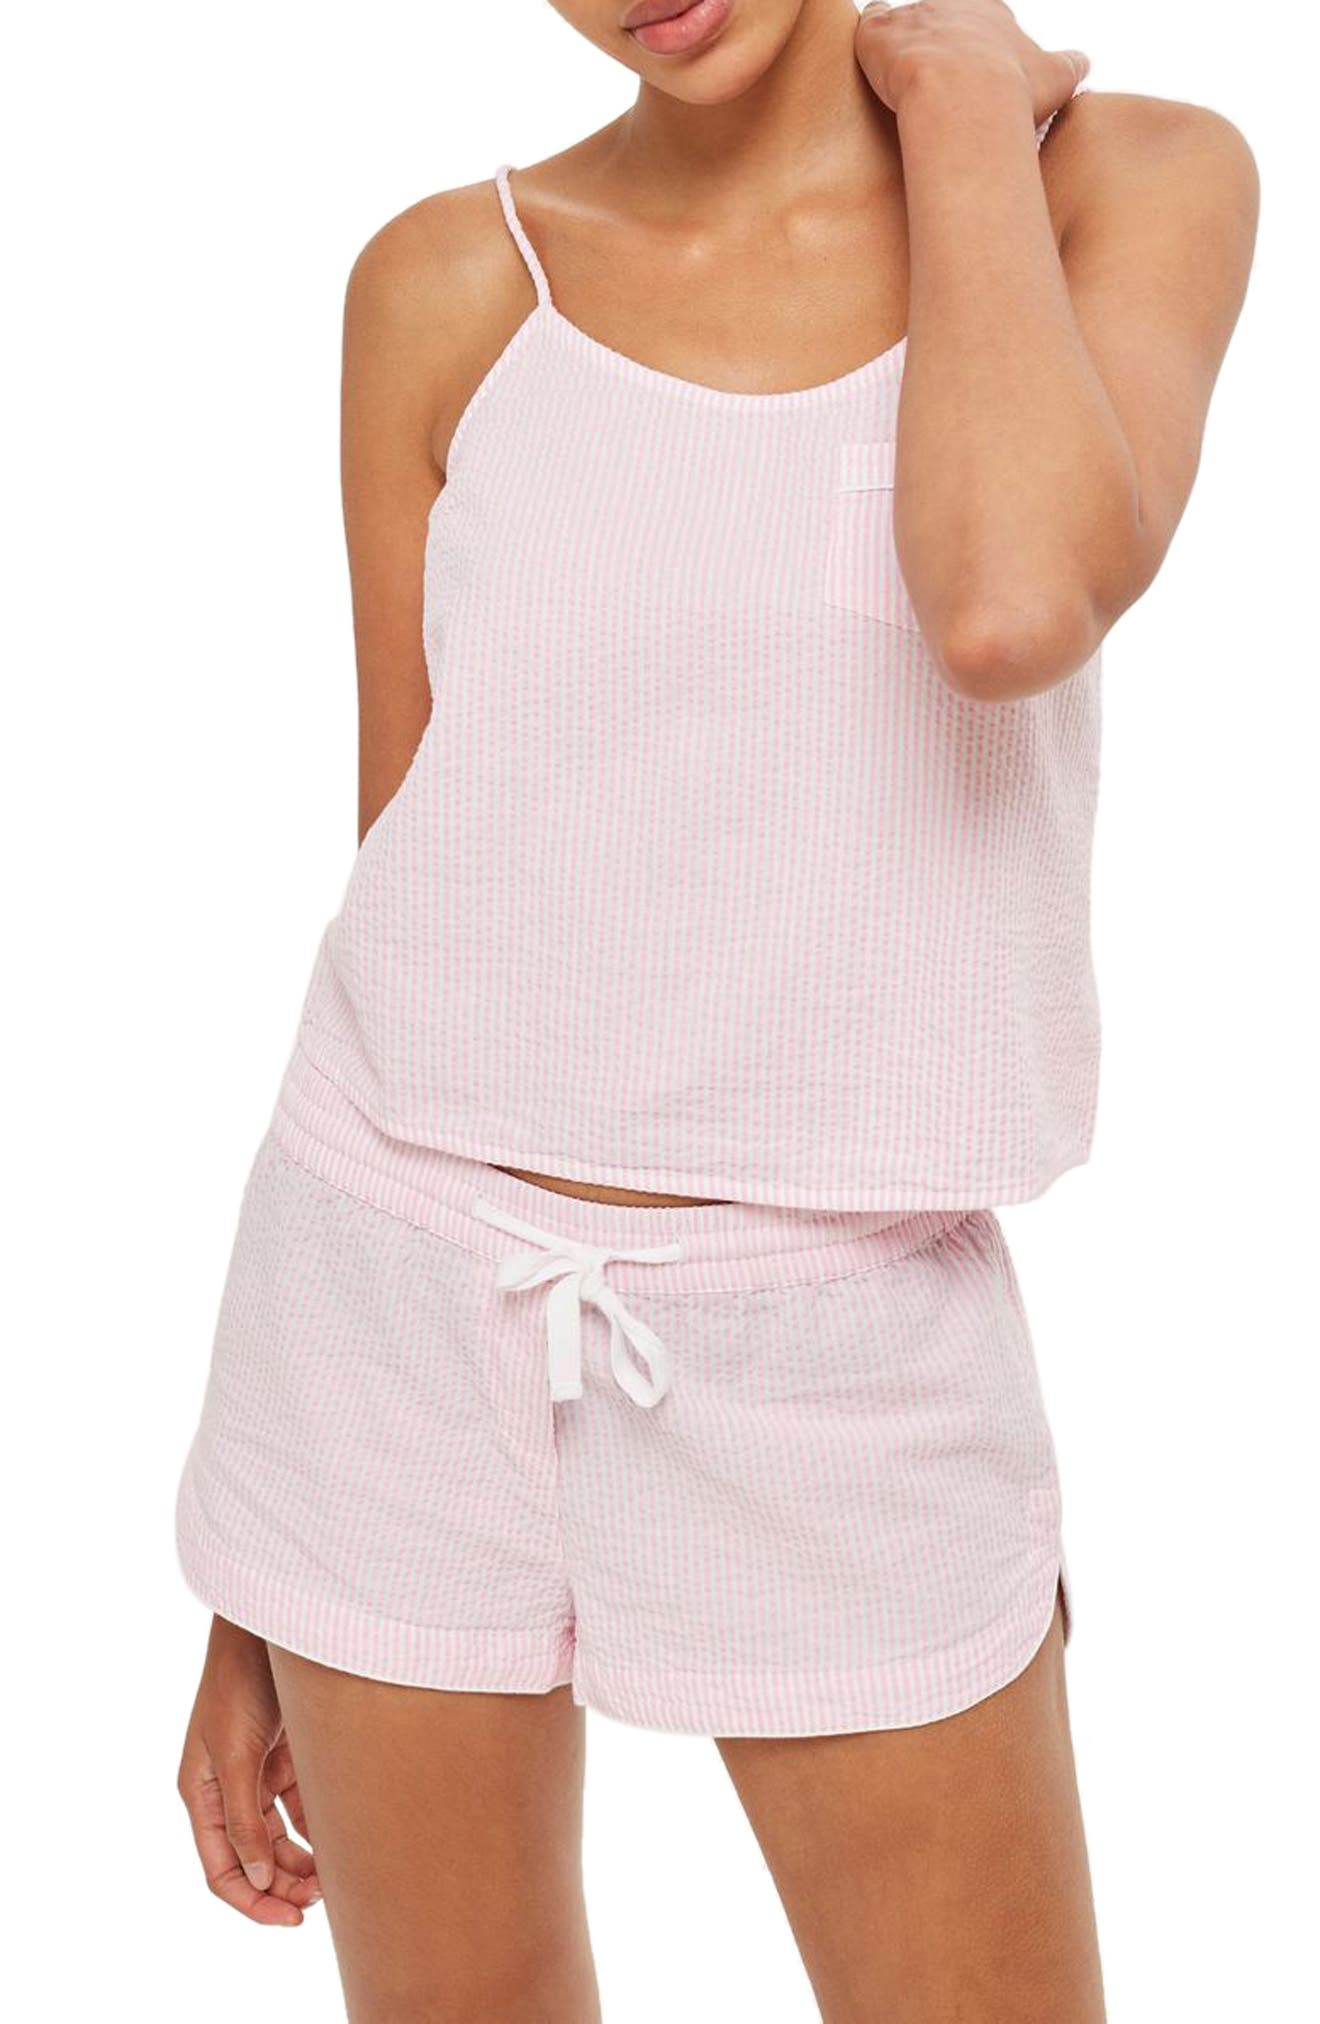 Seersucker Short Pajamas,                         Main,                         color, Light Pink Multi